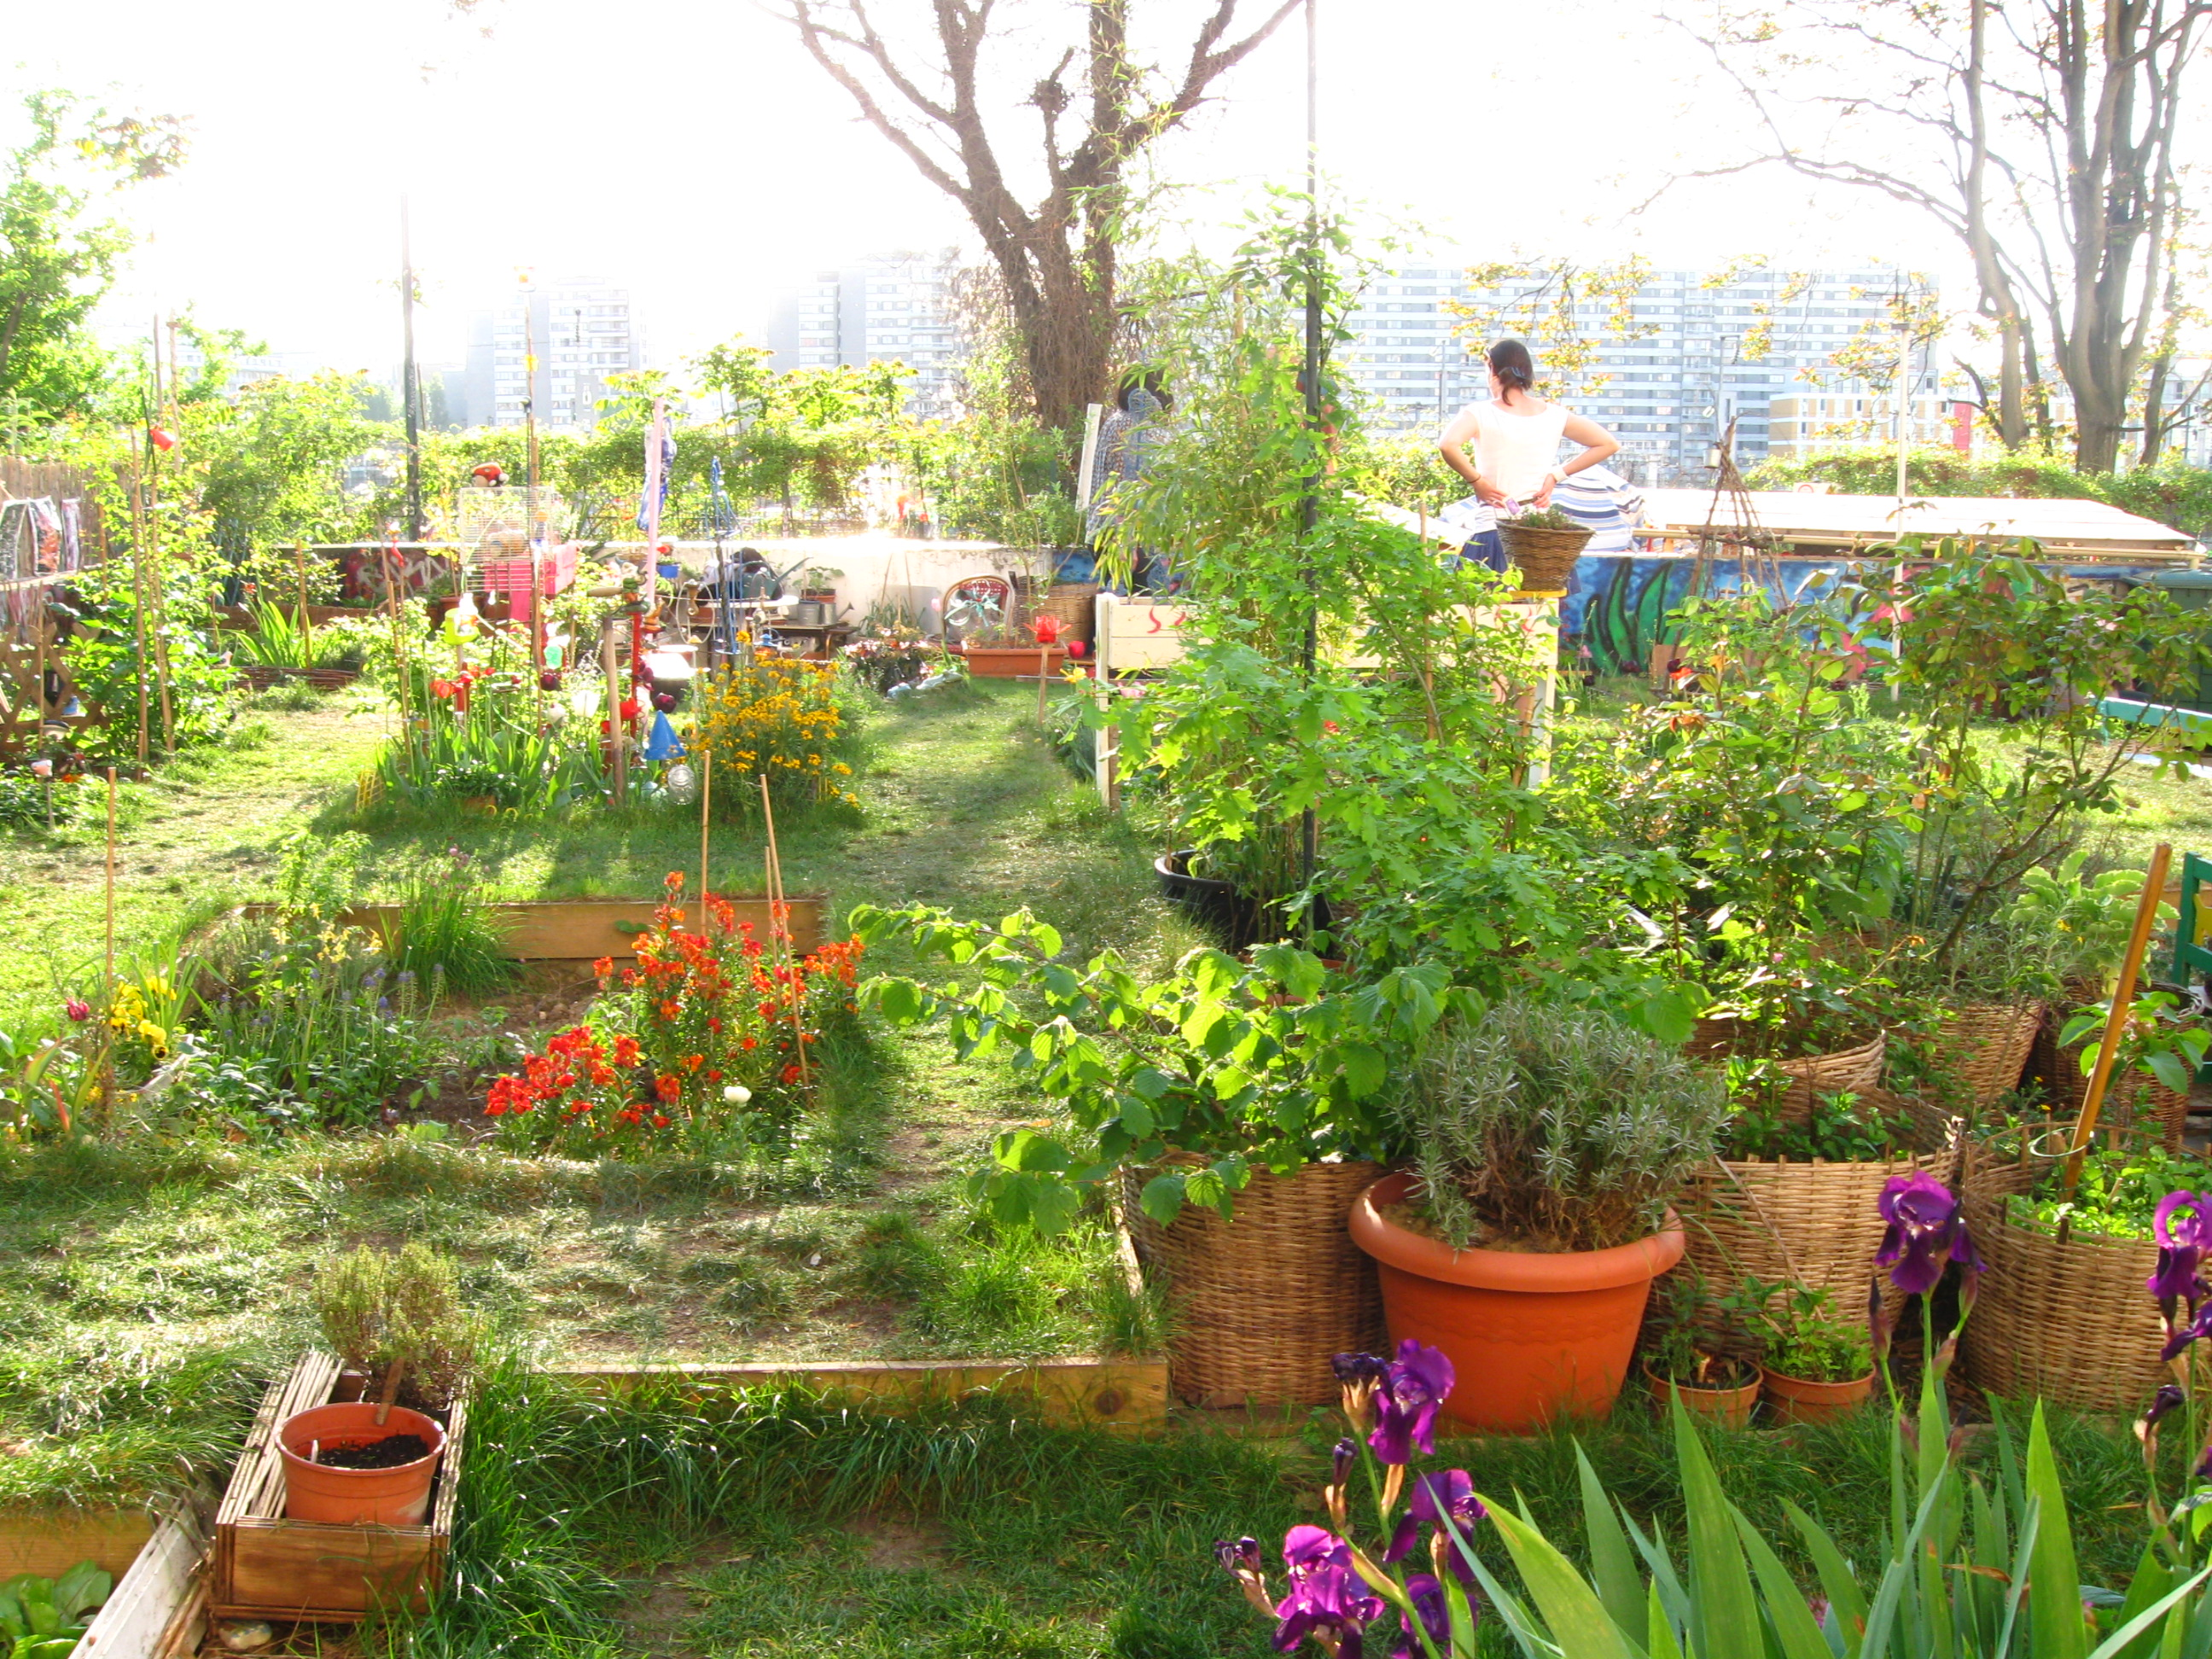 jardin_partage_ecobox_-_paris_18eme_-_photo_de_laurene_caudal_1_